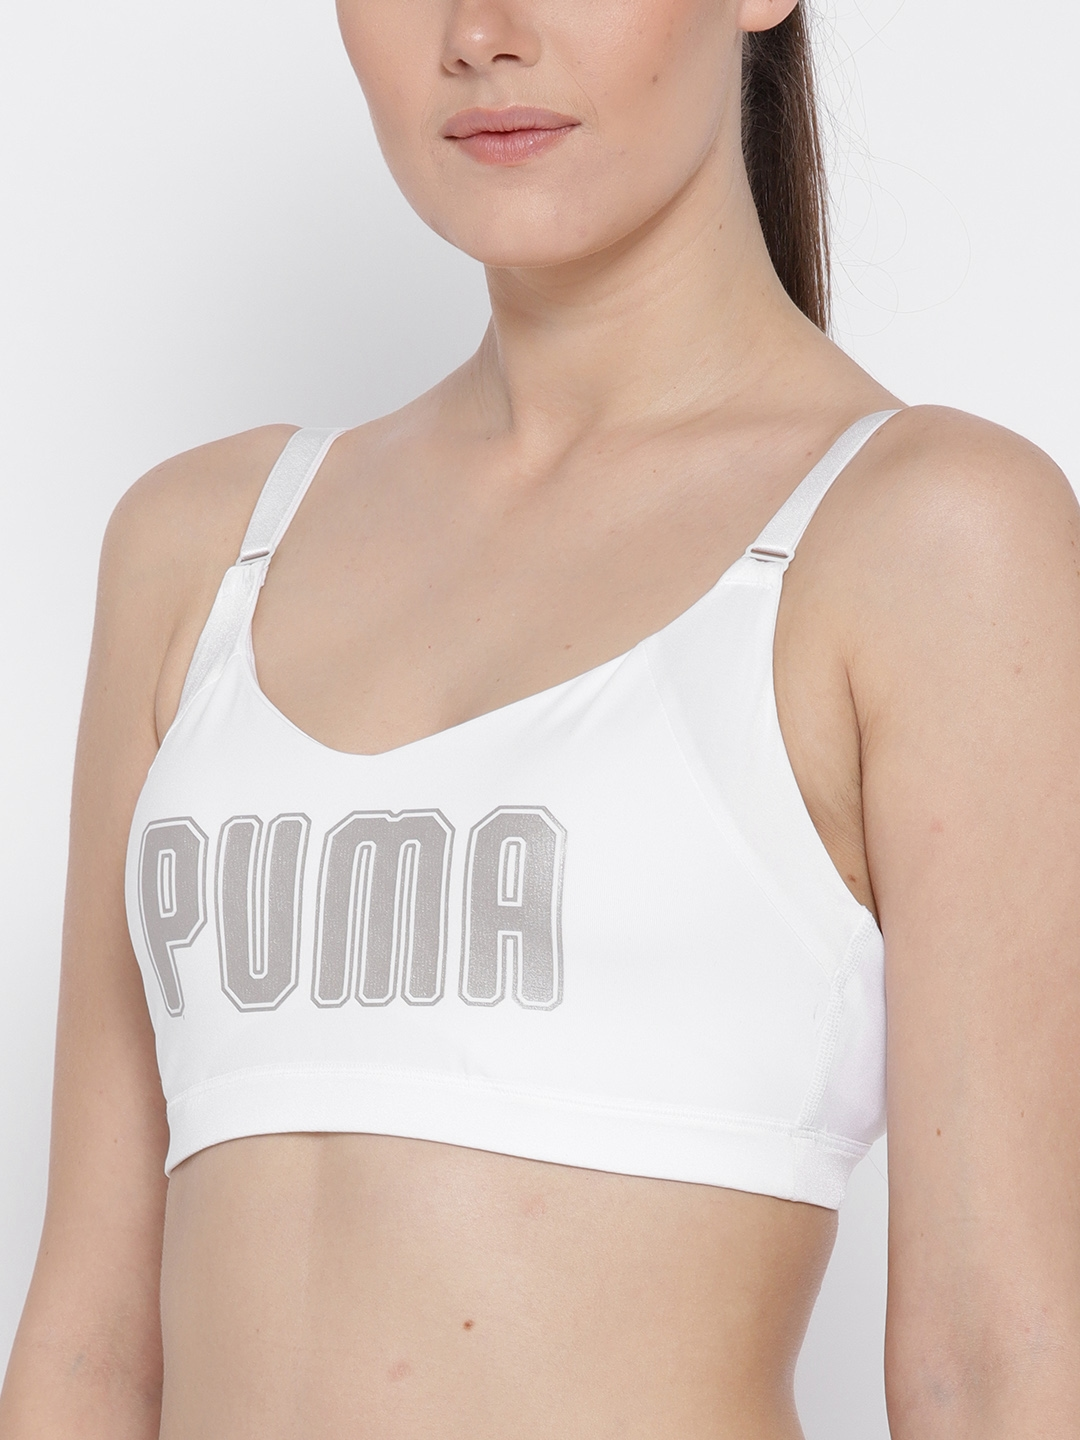 a28d6a98fd158 Puma White Printed Lightly Padded En Pointe Logo Bra Sports Bra 51647502